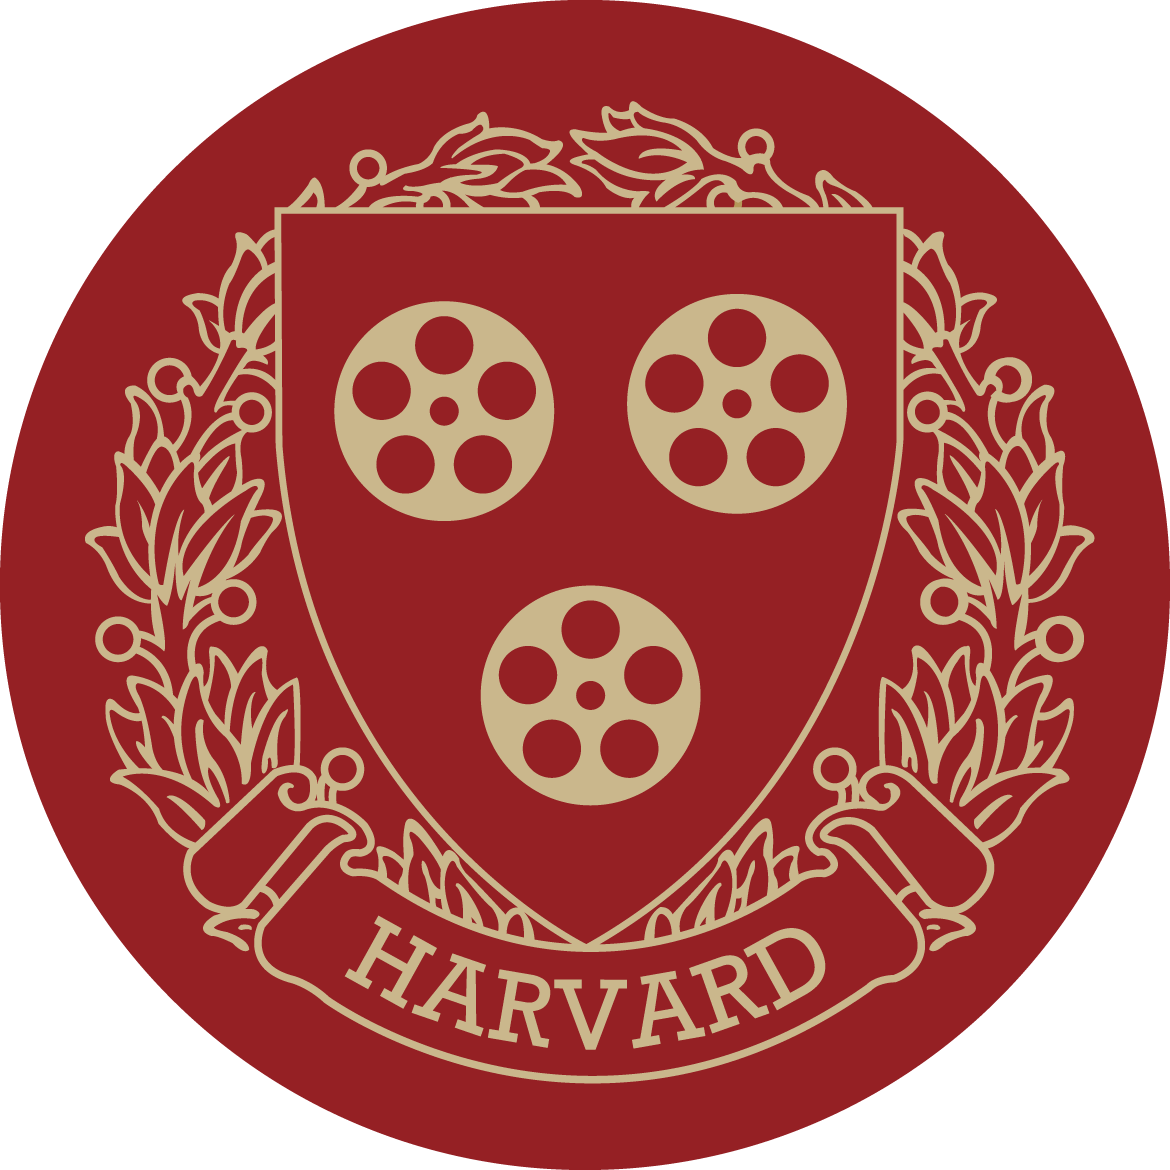 Harvard University's Suggested Film Viewing List: Narrative Films (2012)'s icon